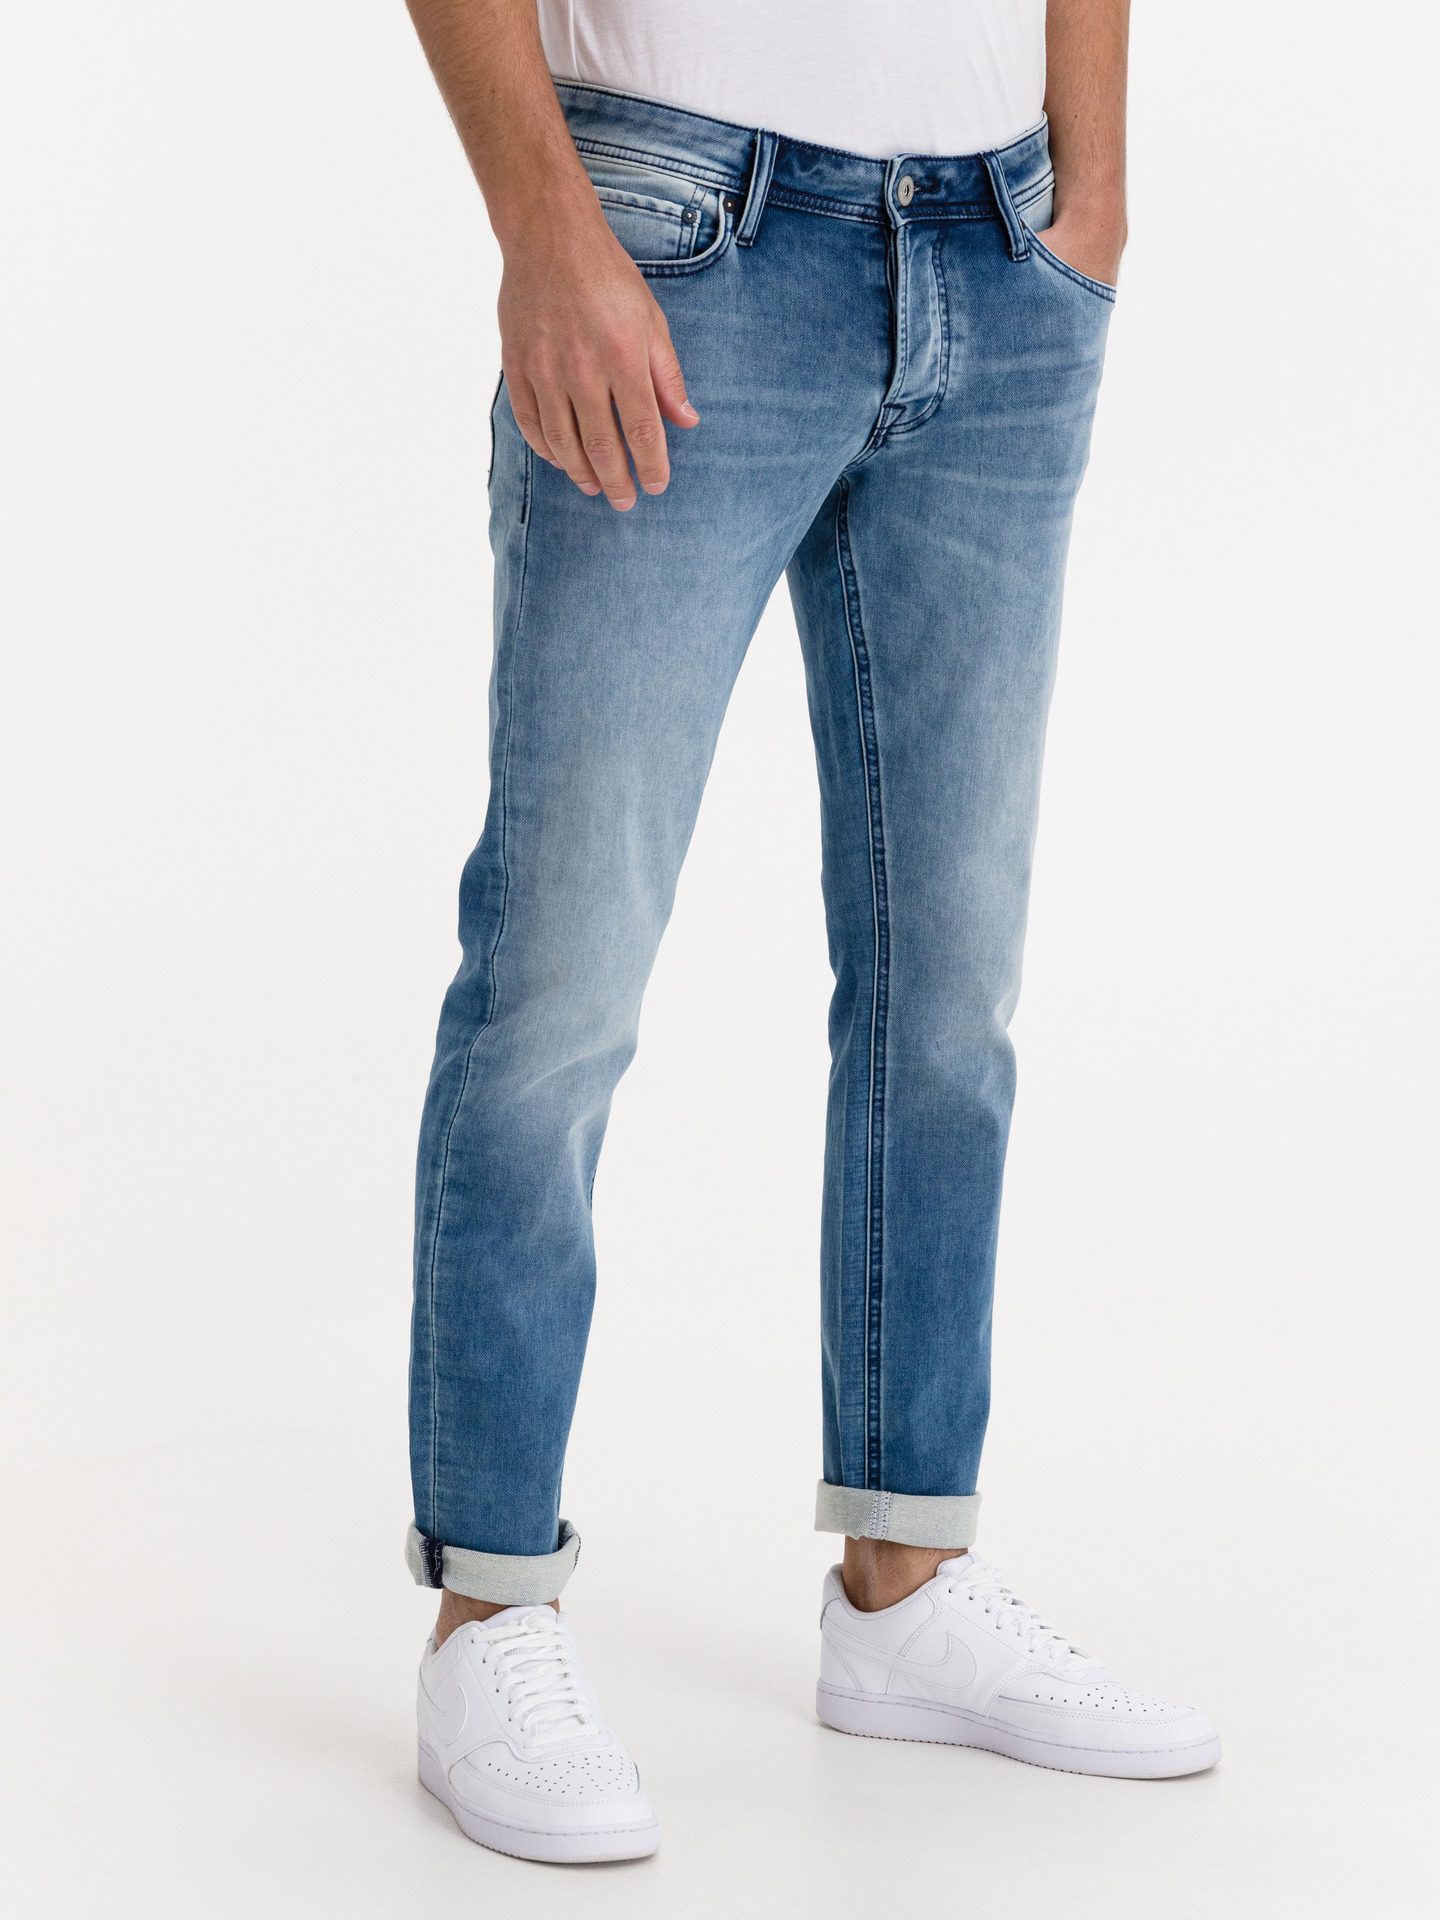 Glenn Original Indigo Knit Jeans Jack   Jones Modrá